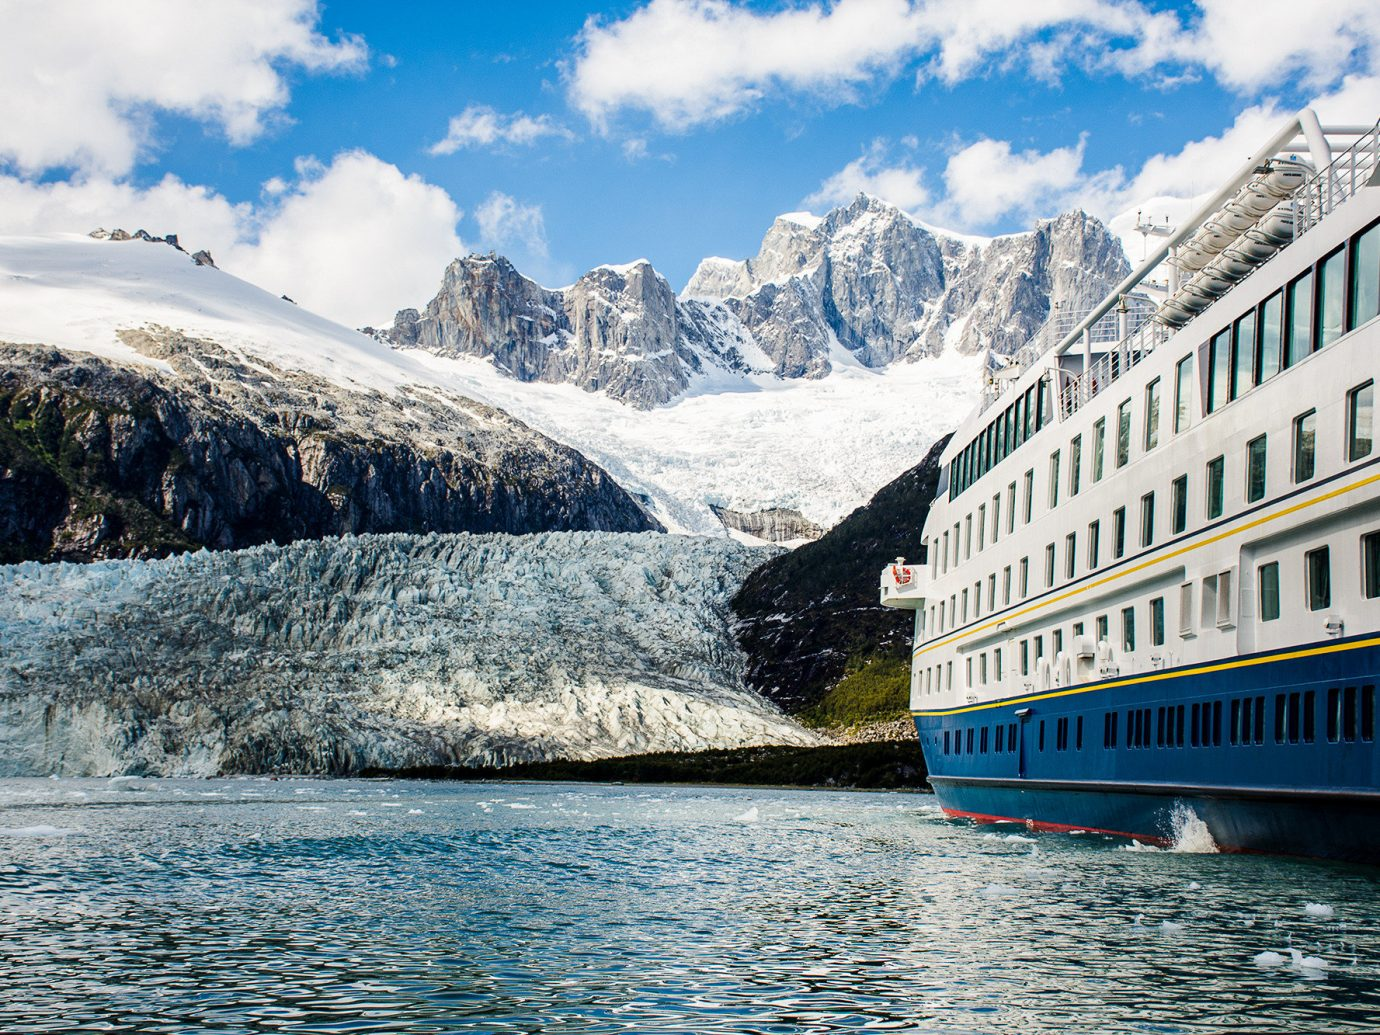 Cruise Travel Luxury Travel Trip Ideas outdoor sky water mountainous landforms mountain reflection mountain range Lake glacial landform fjord cloud alps tourism snow glacier landscape tree travel Winter mount scenery cruise ship River day